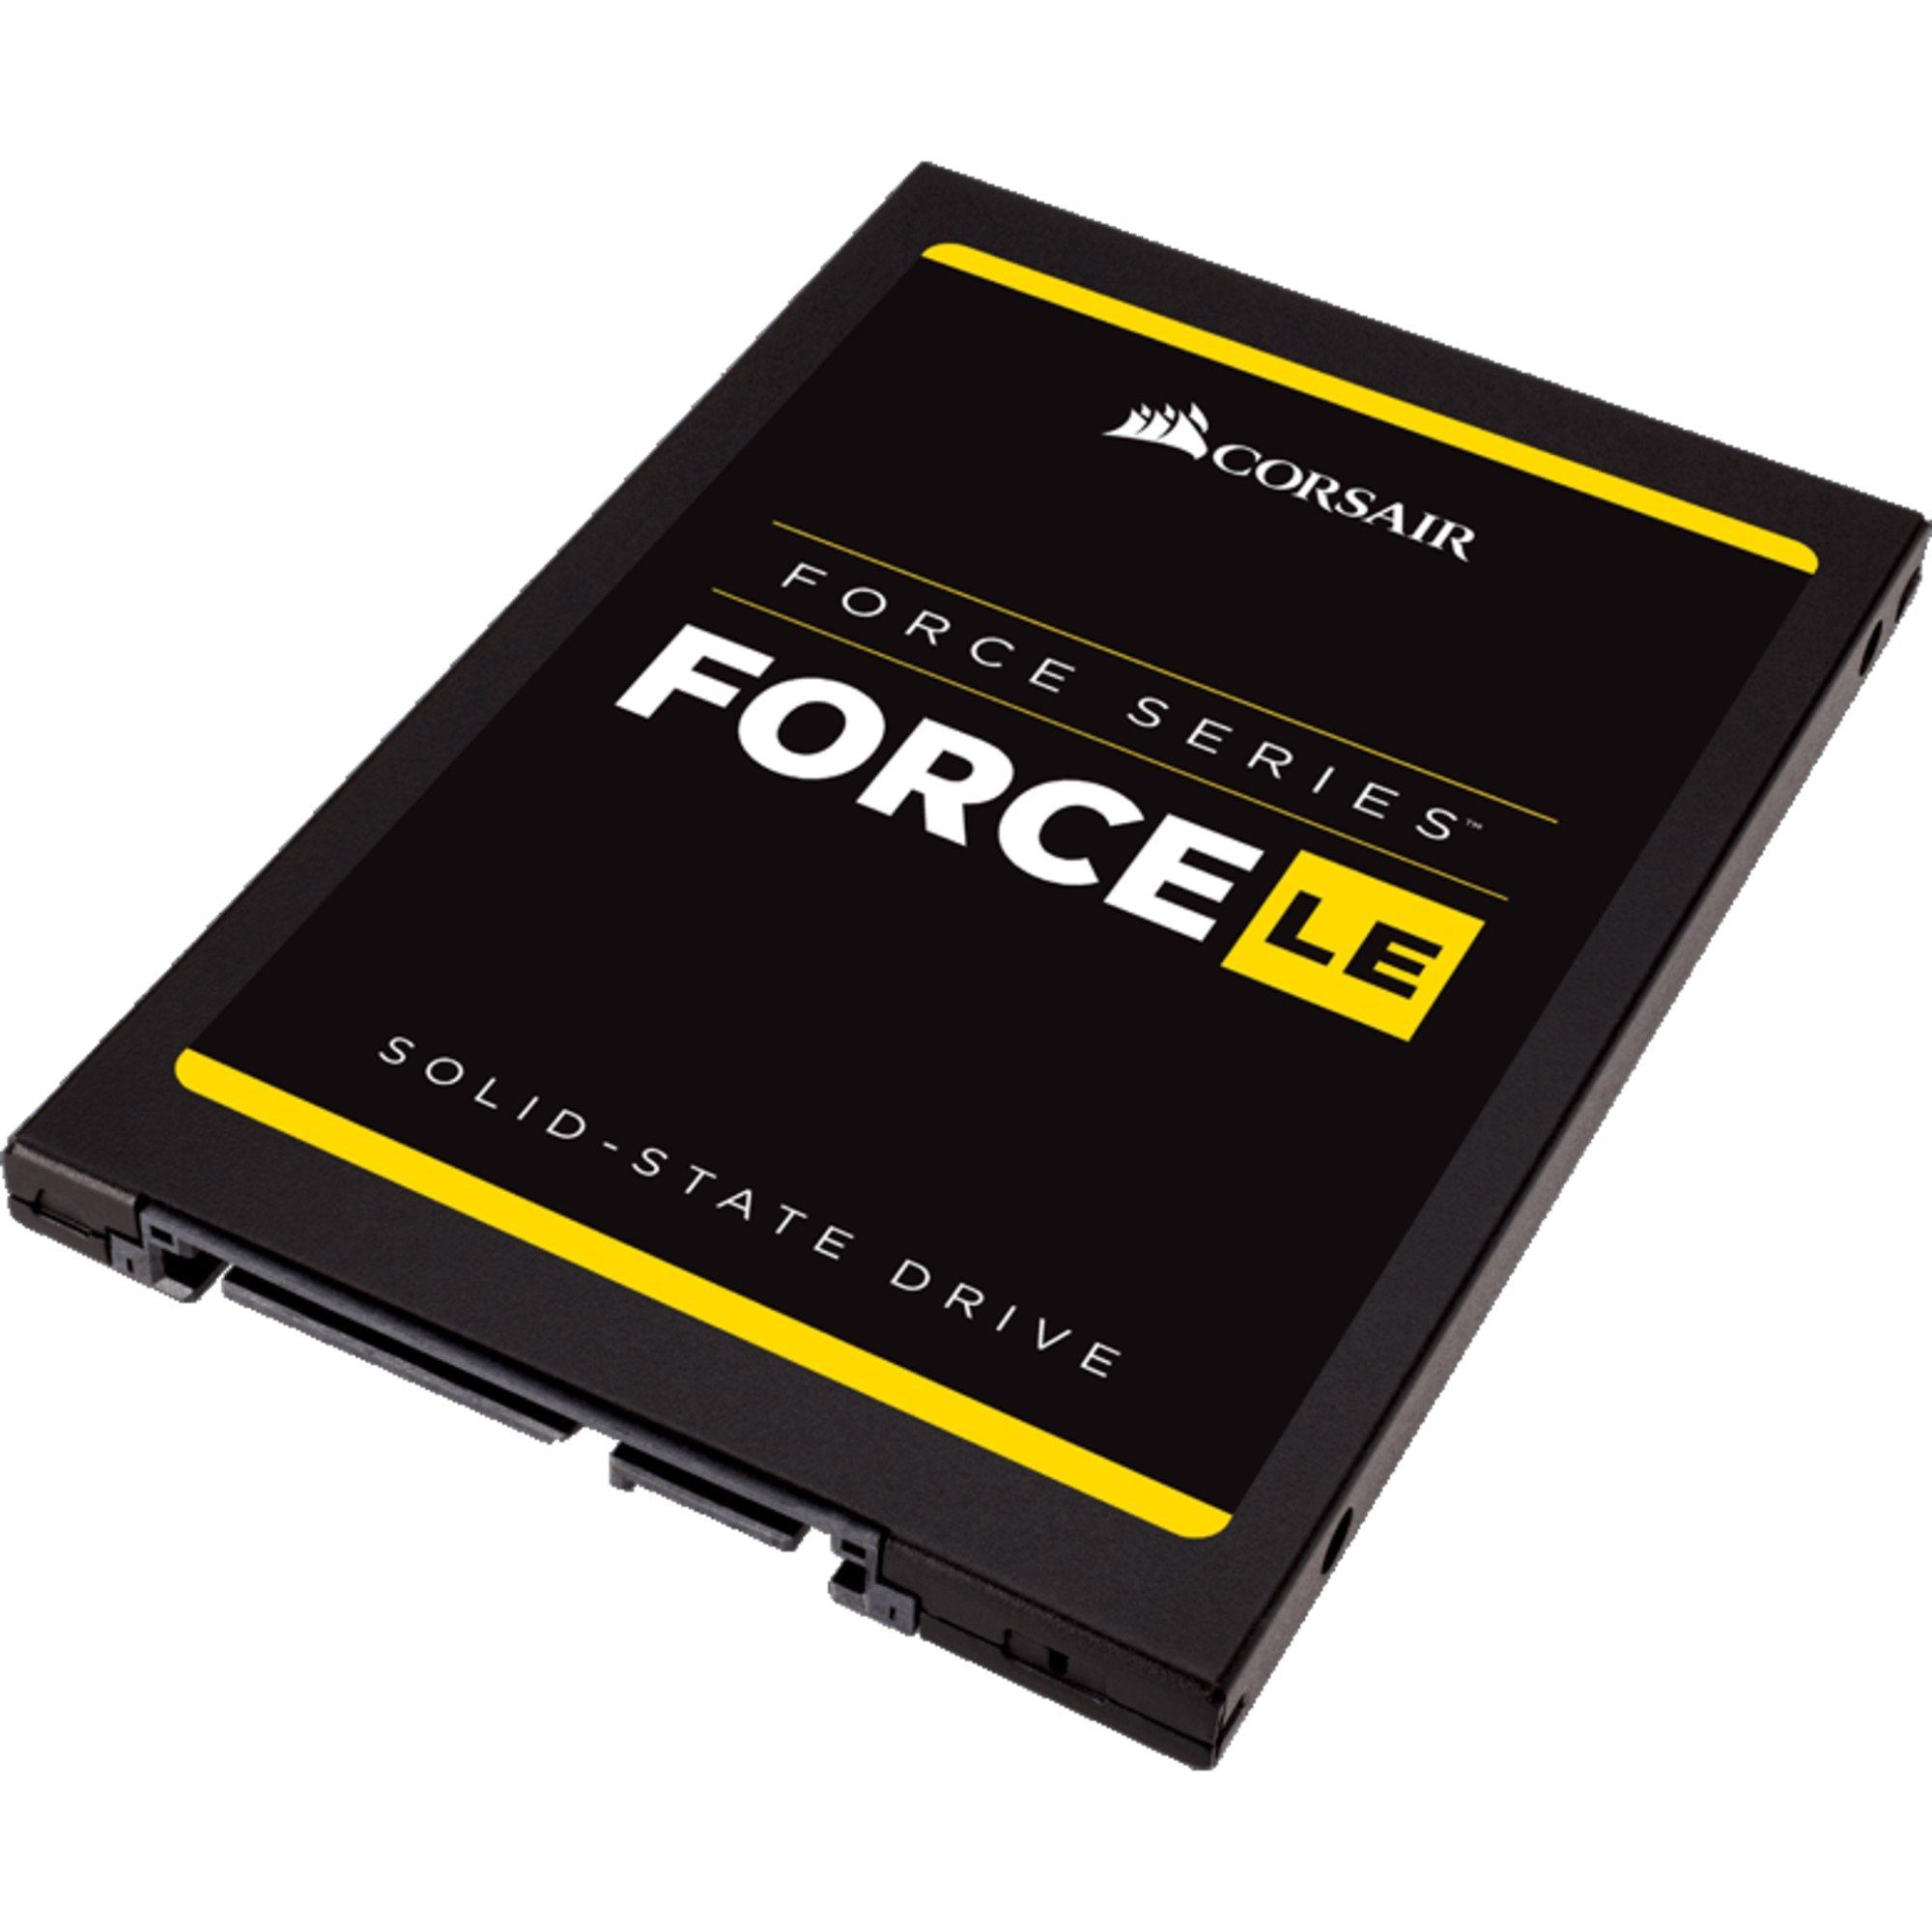 "Corsair Solid State Drive »Force LE200B 960 GB, SATA 6 GB/s, 2,5""«"